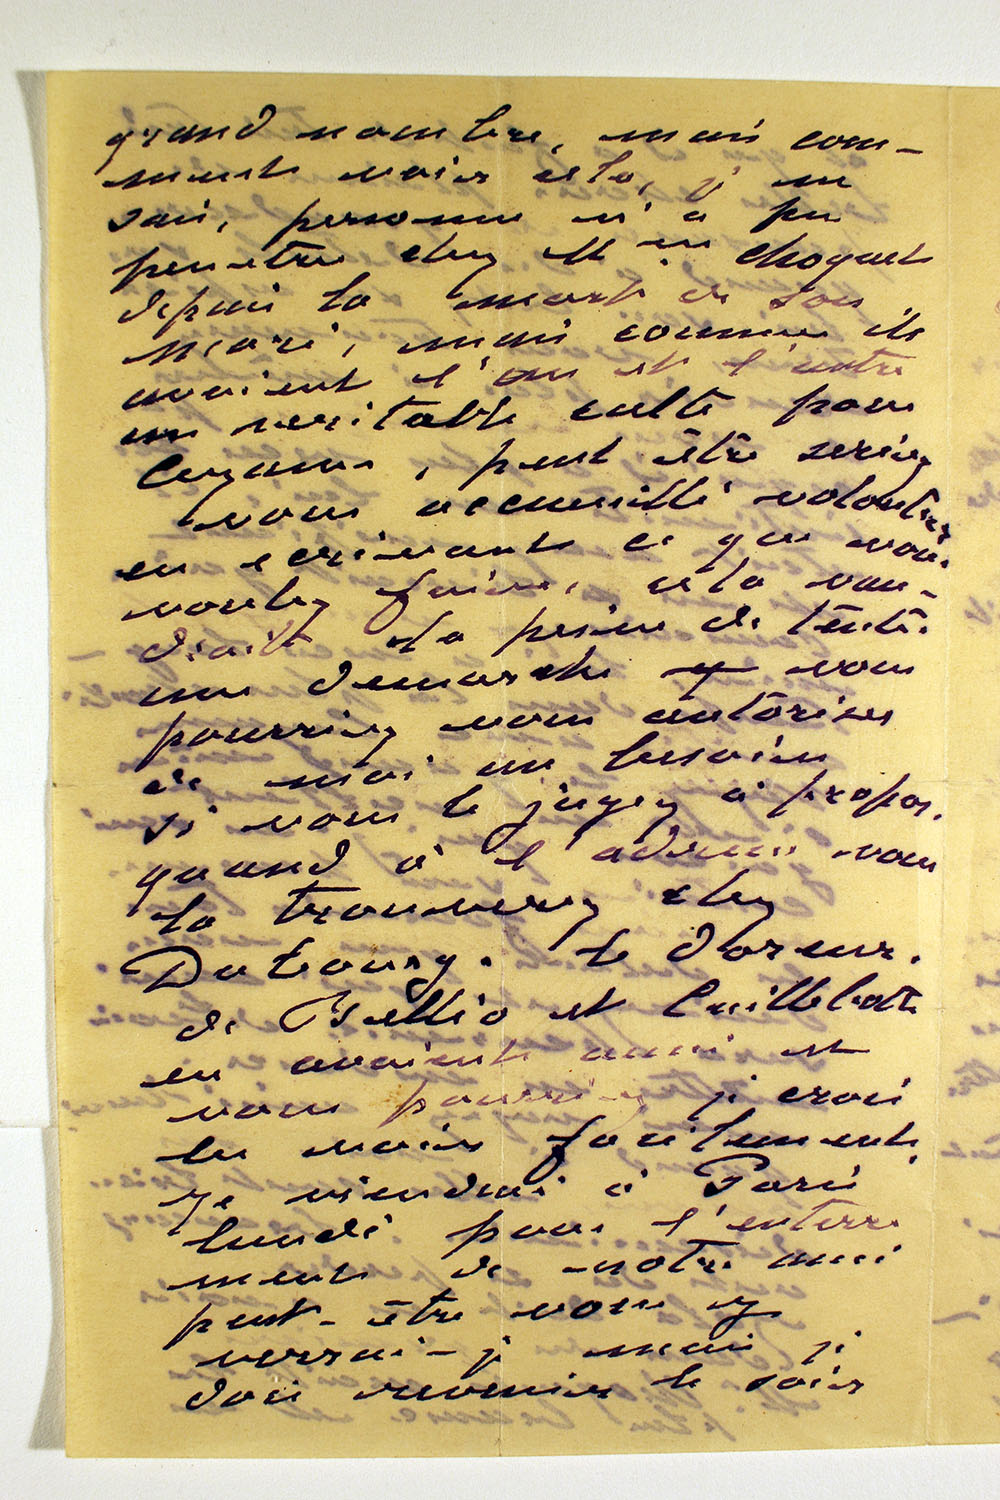 Page three of letter from Claude Monet to unknown recipient, February 24, 1894